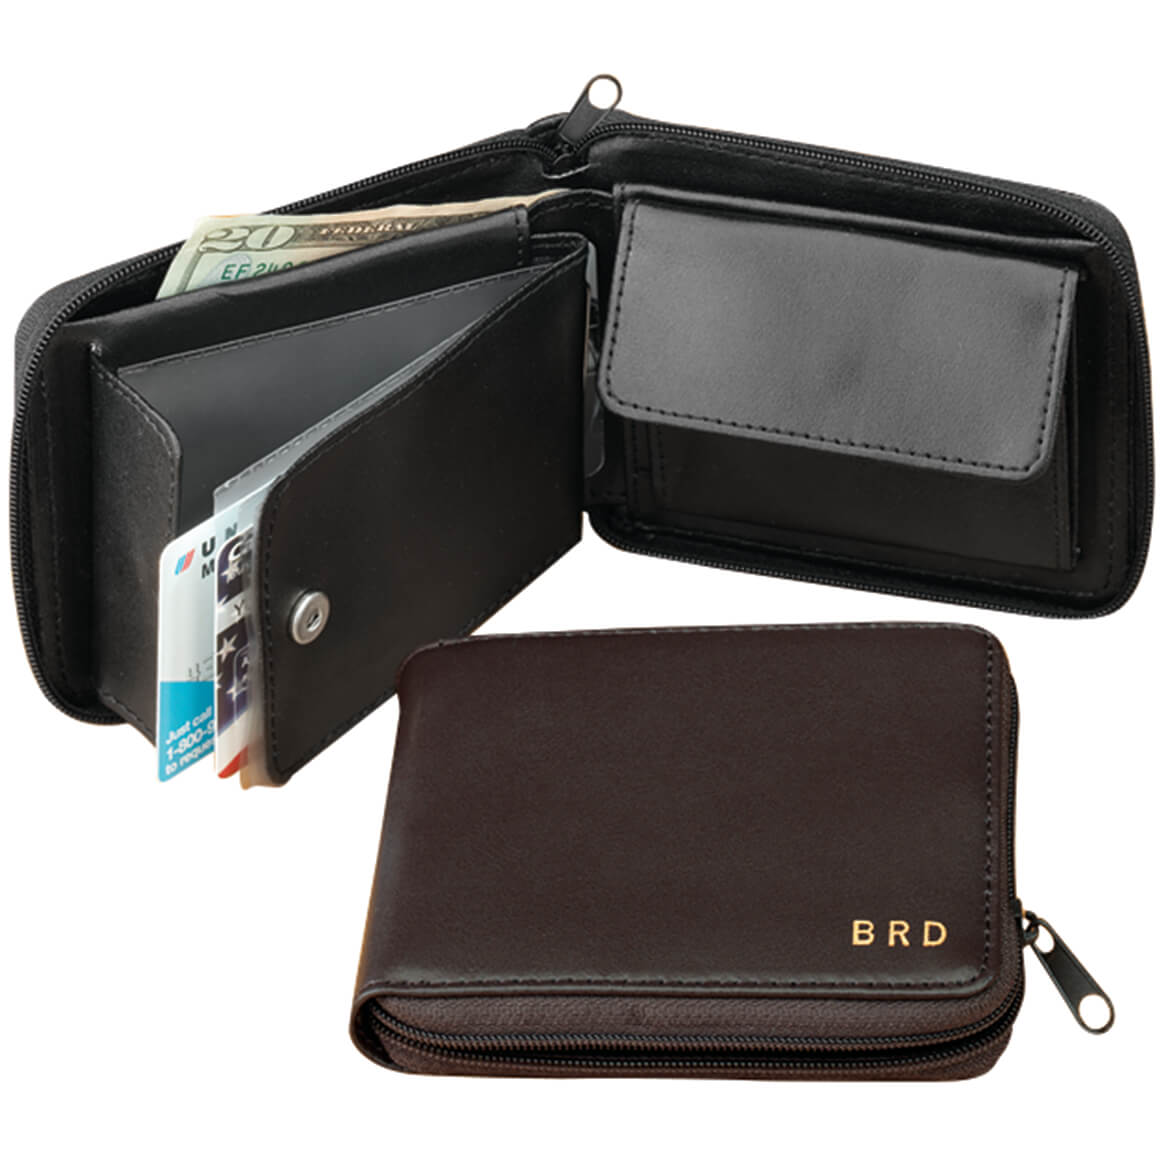 Personalized Leather Zipper Wallet-303263